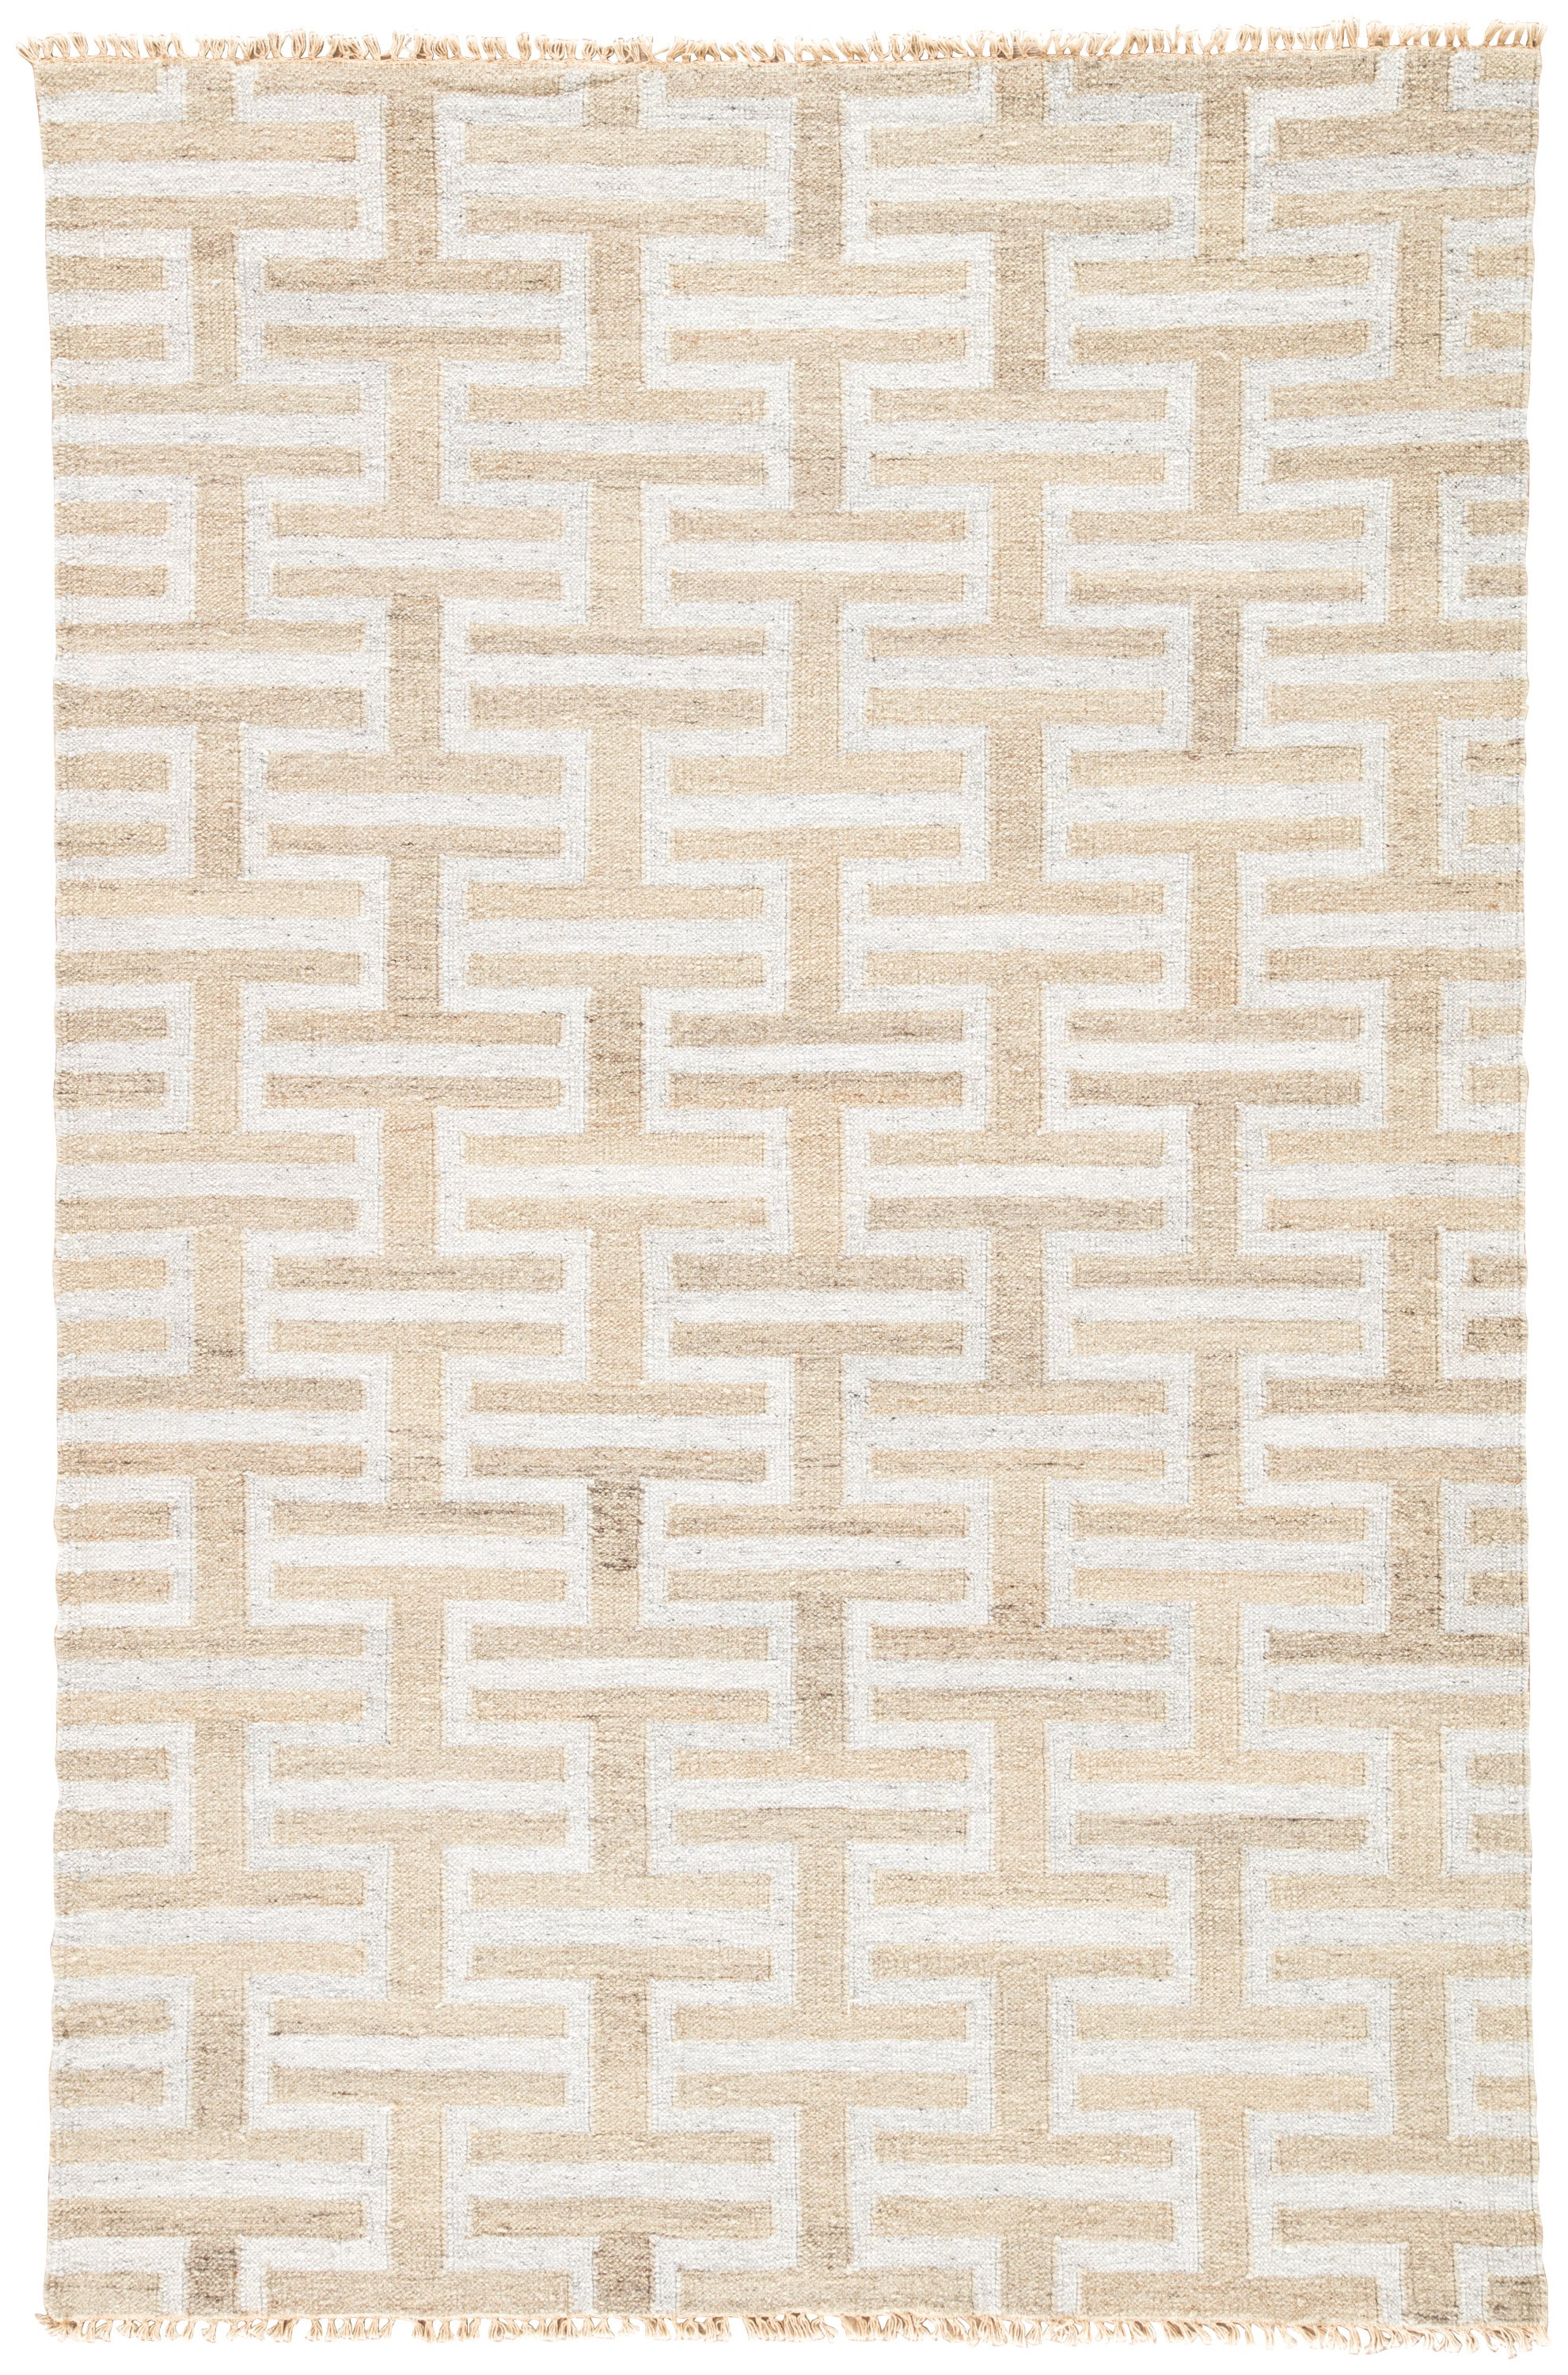 Rectangle Beige Geometric Dhurrie Blends Transitional recommended for Bedroom, Bathroom, Dining Room, Office, Hallway, Living Room